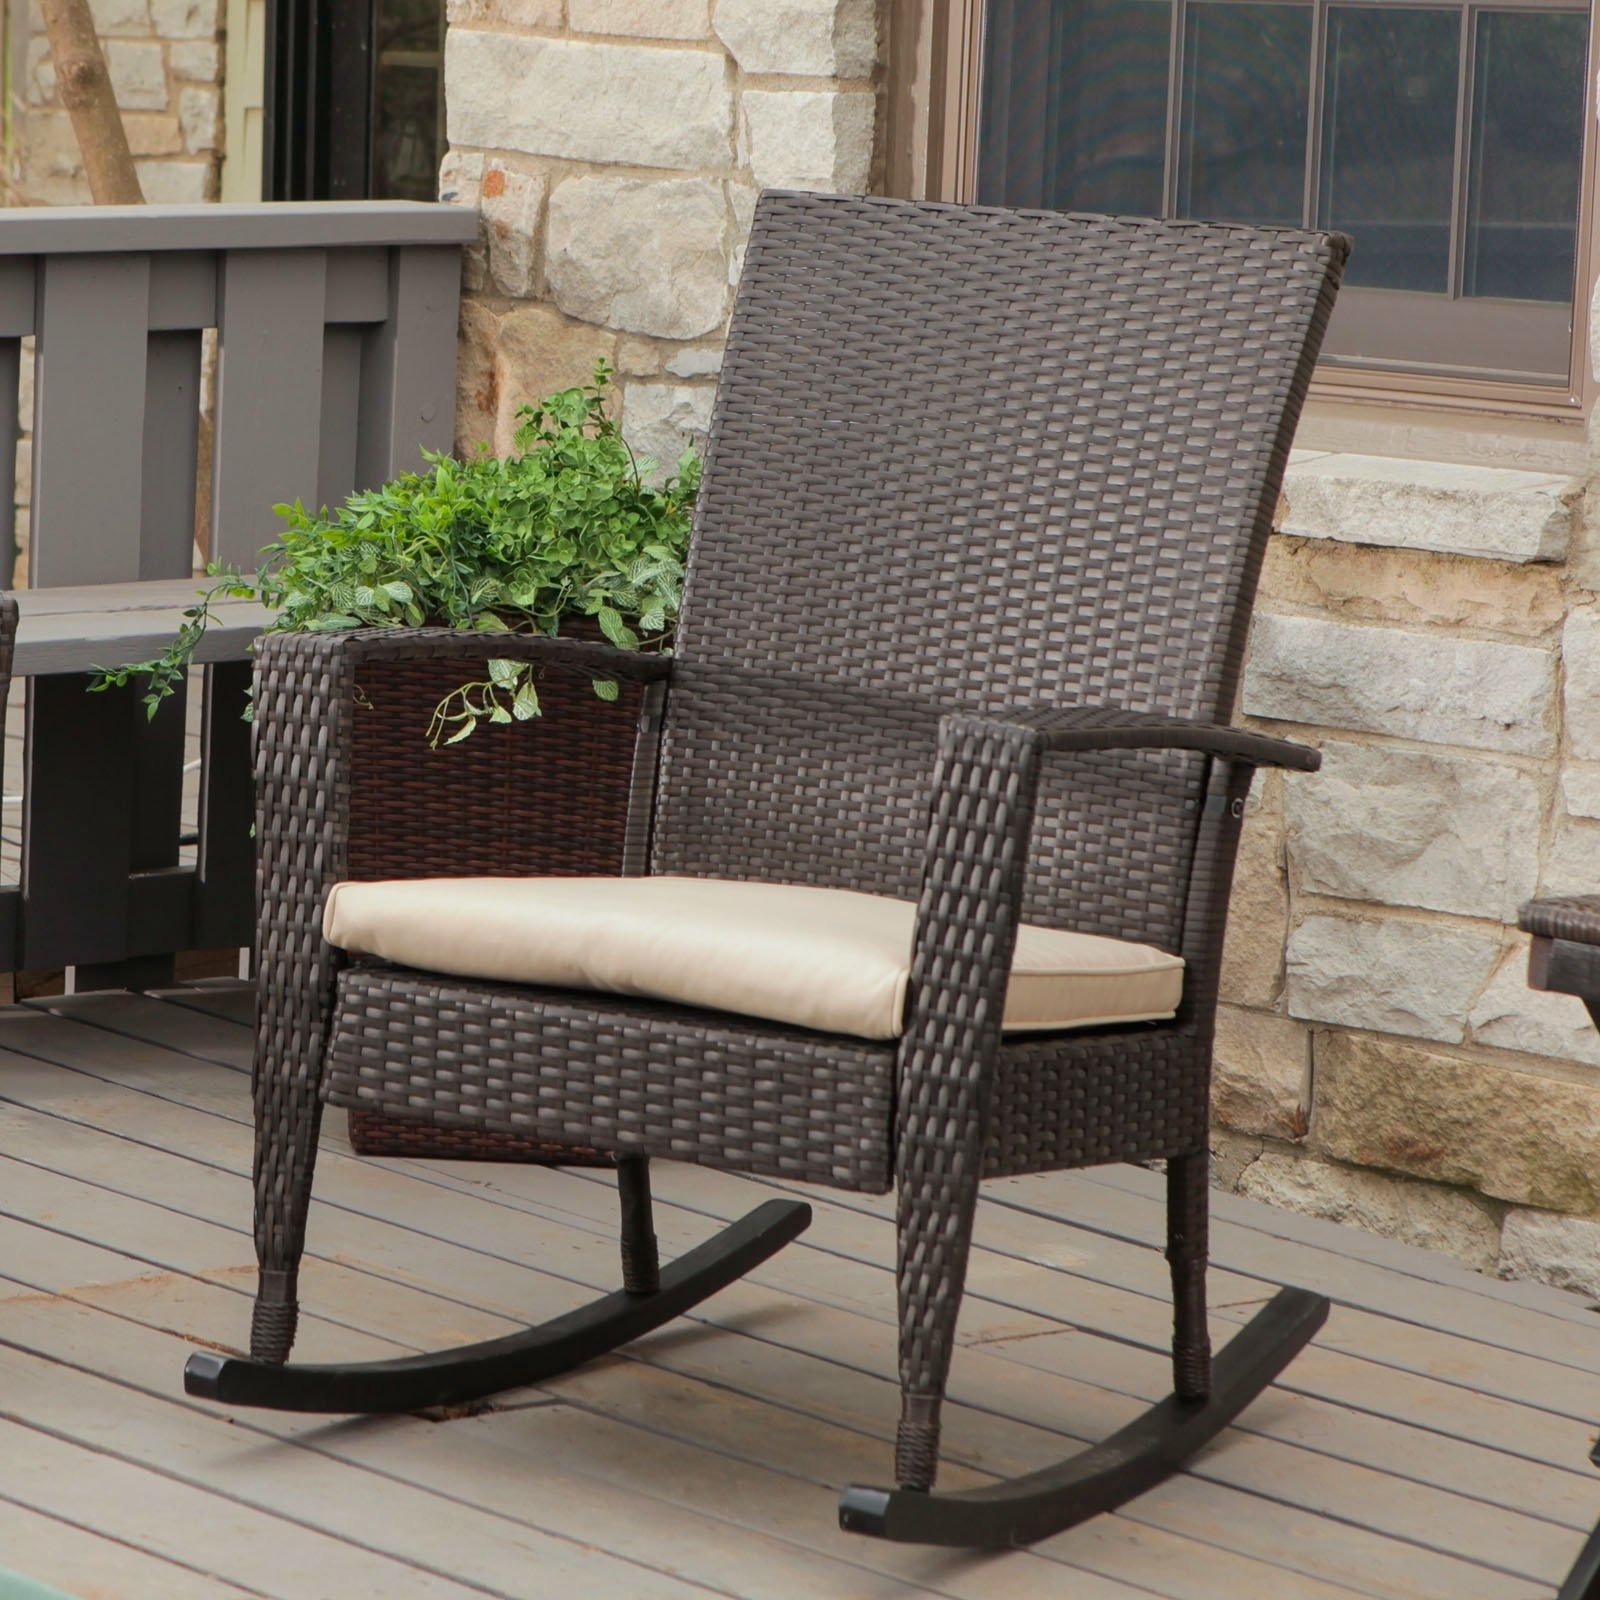 2018 Fine Rocking Chair Cushion Outdoor In Office Chairs Online With Inside Outdoor Rocking Chairs With Cushions (View 15 of 20)